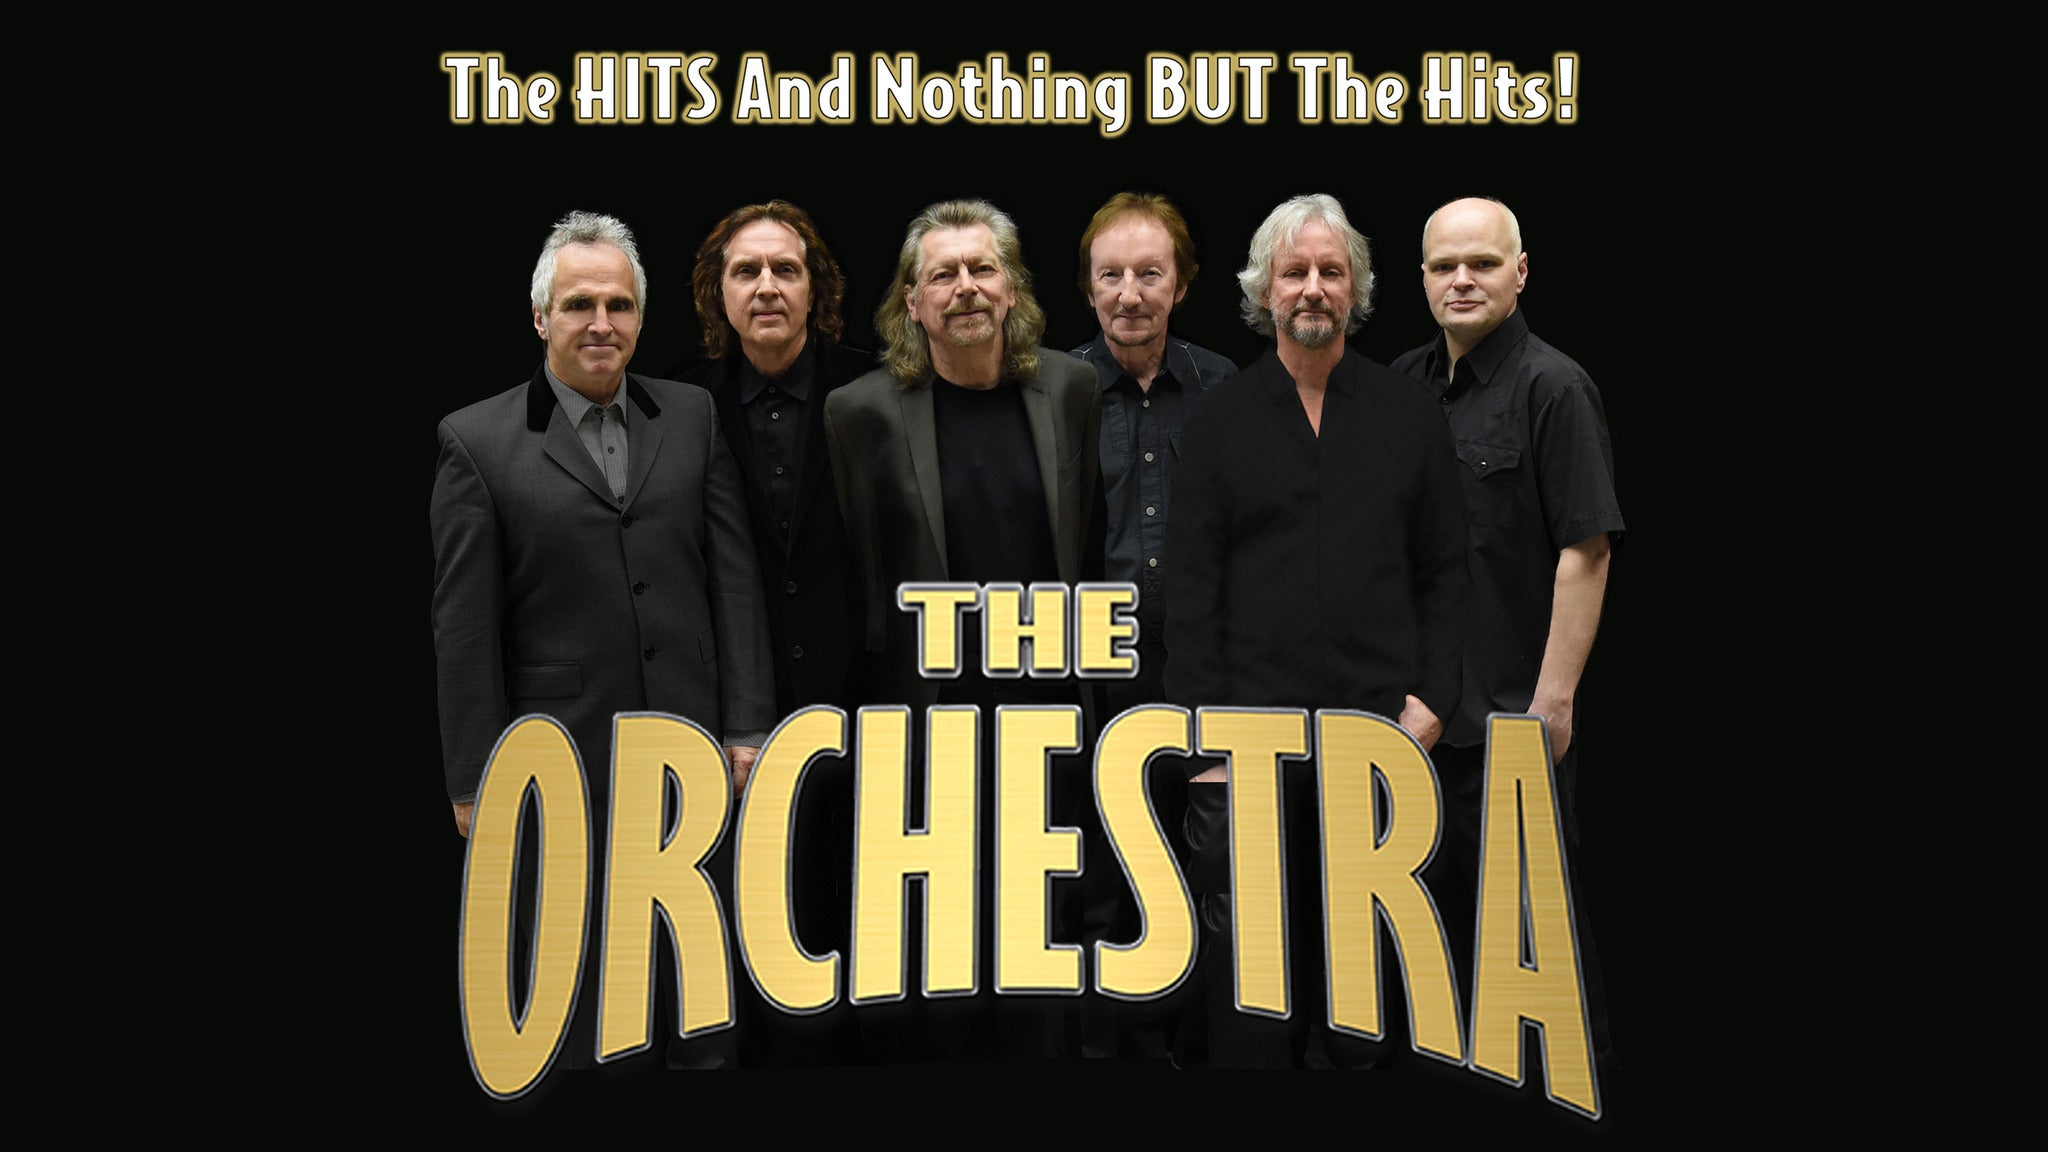 The Orchestra featuring former members of Electric Light Orchestra